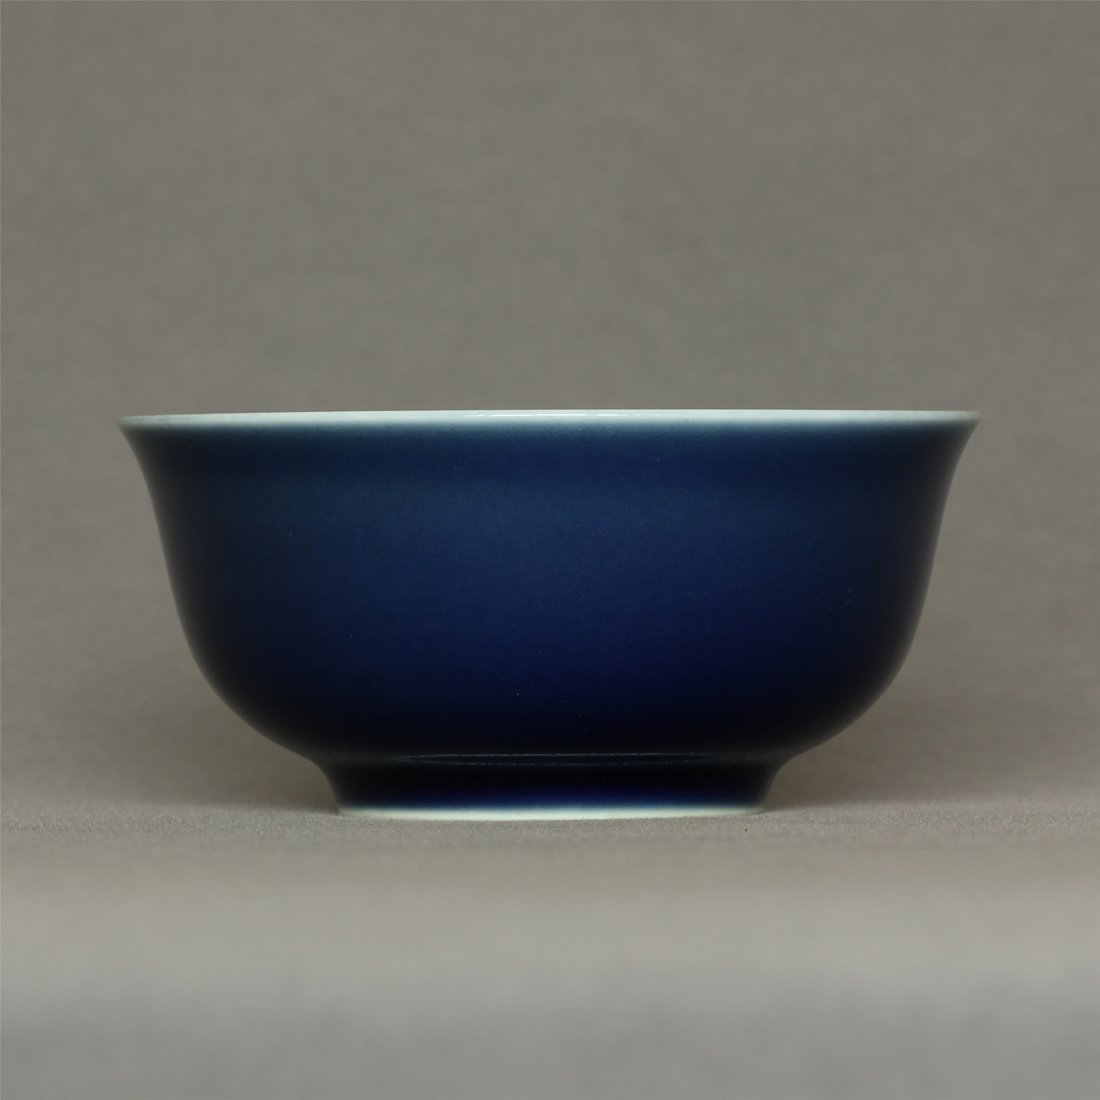 Blue glaze porcelain bowl of Qing Dynasty QiangLong